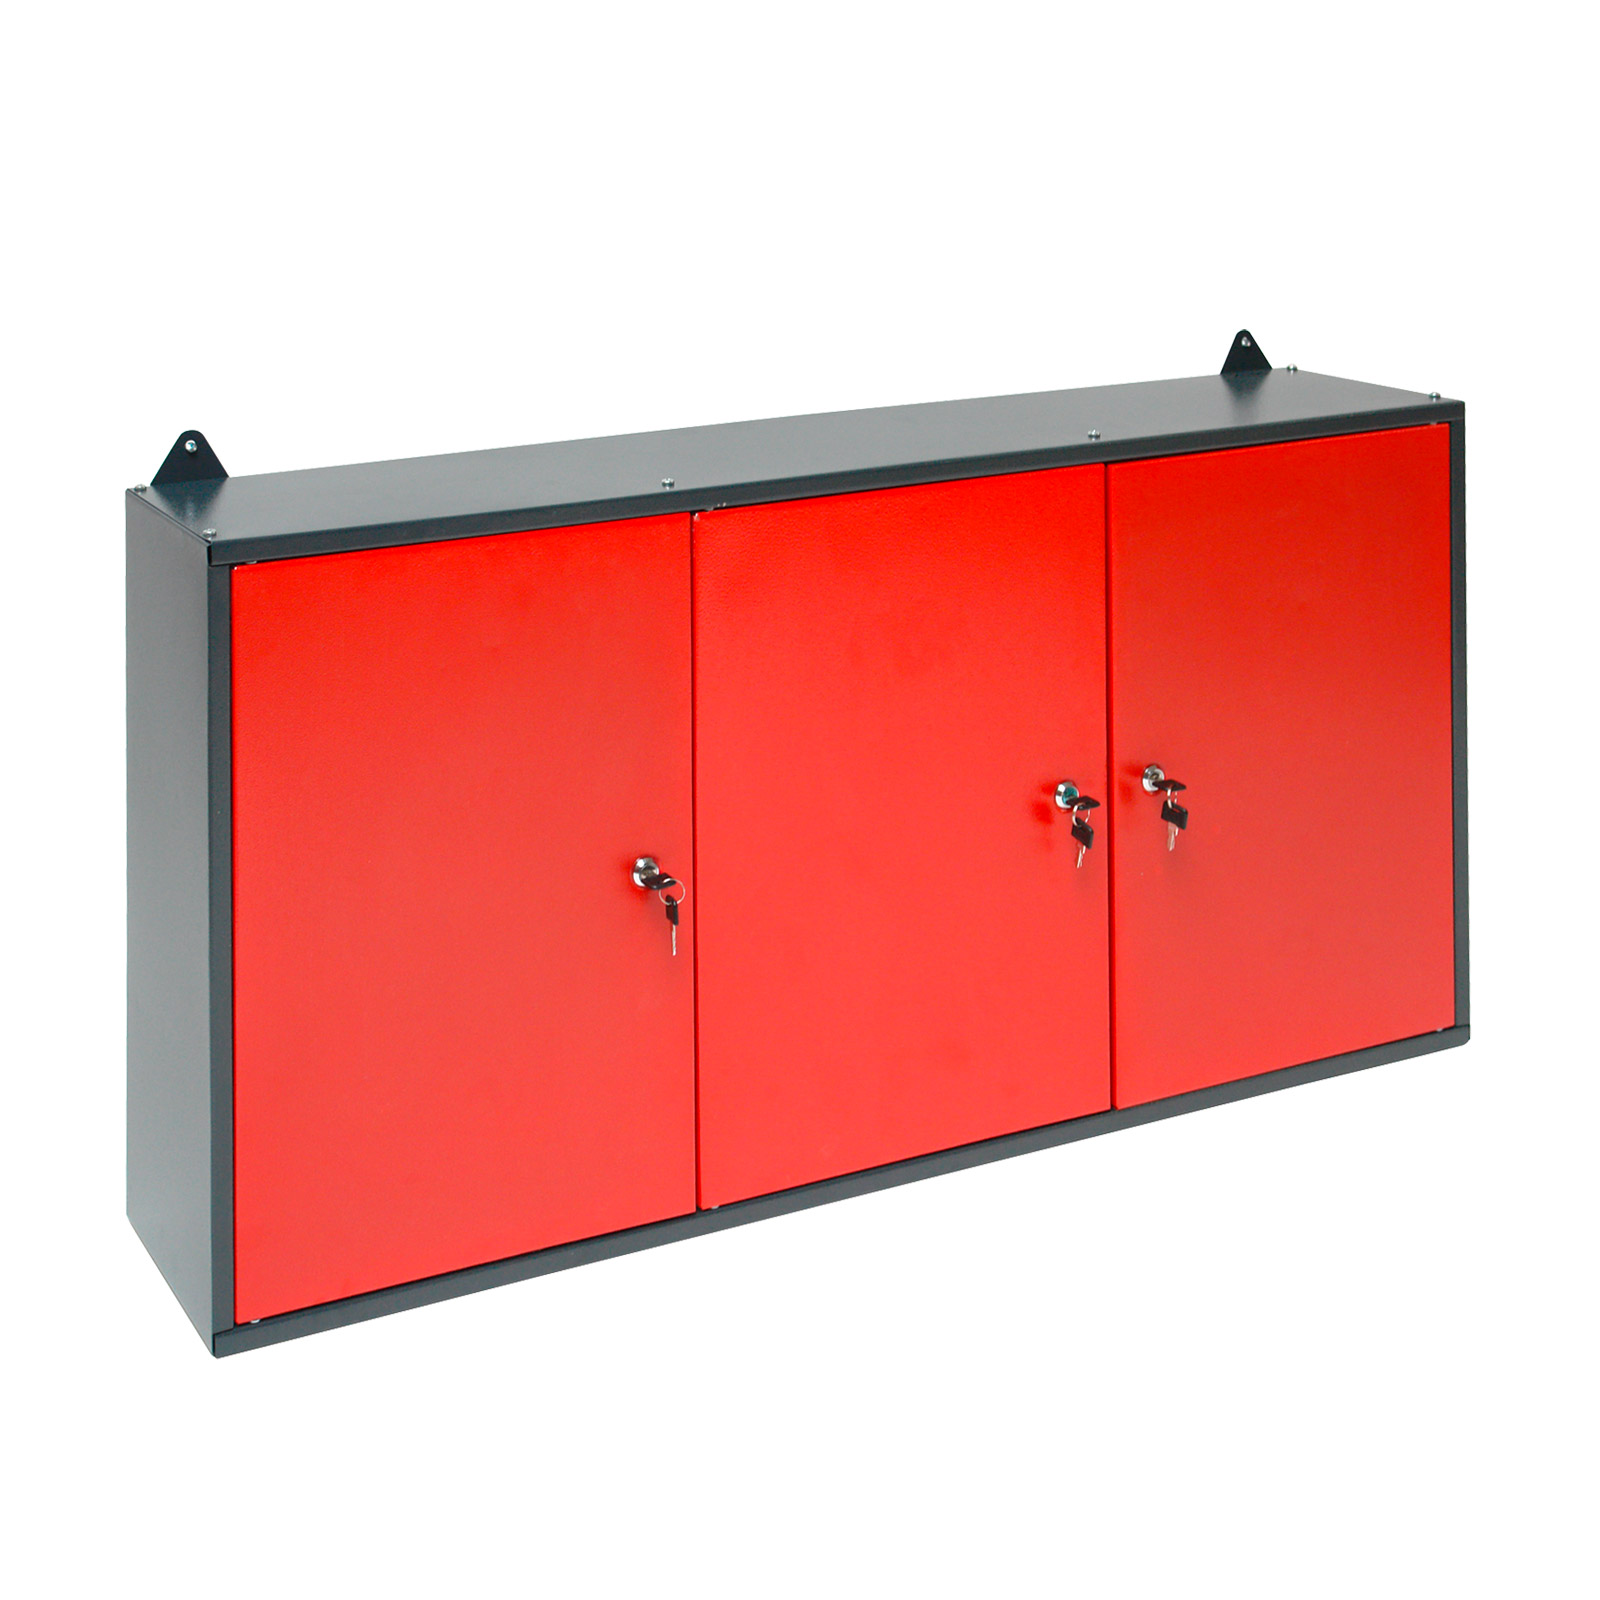 metall wandschrank h ngeschrank lochwand f r garage werkstatt rot anthr 3 t ren ebay. Black Bedroom Furniture Sets. Home Design Ideas